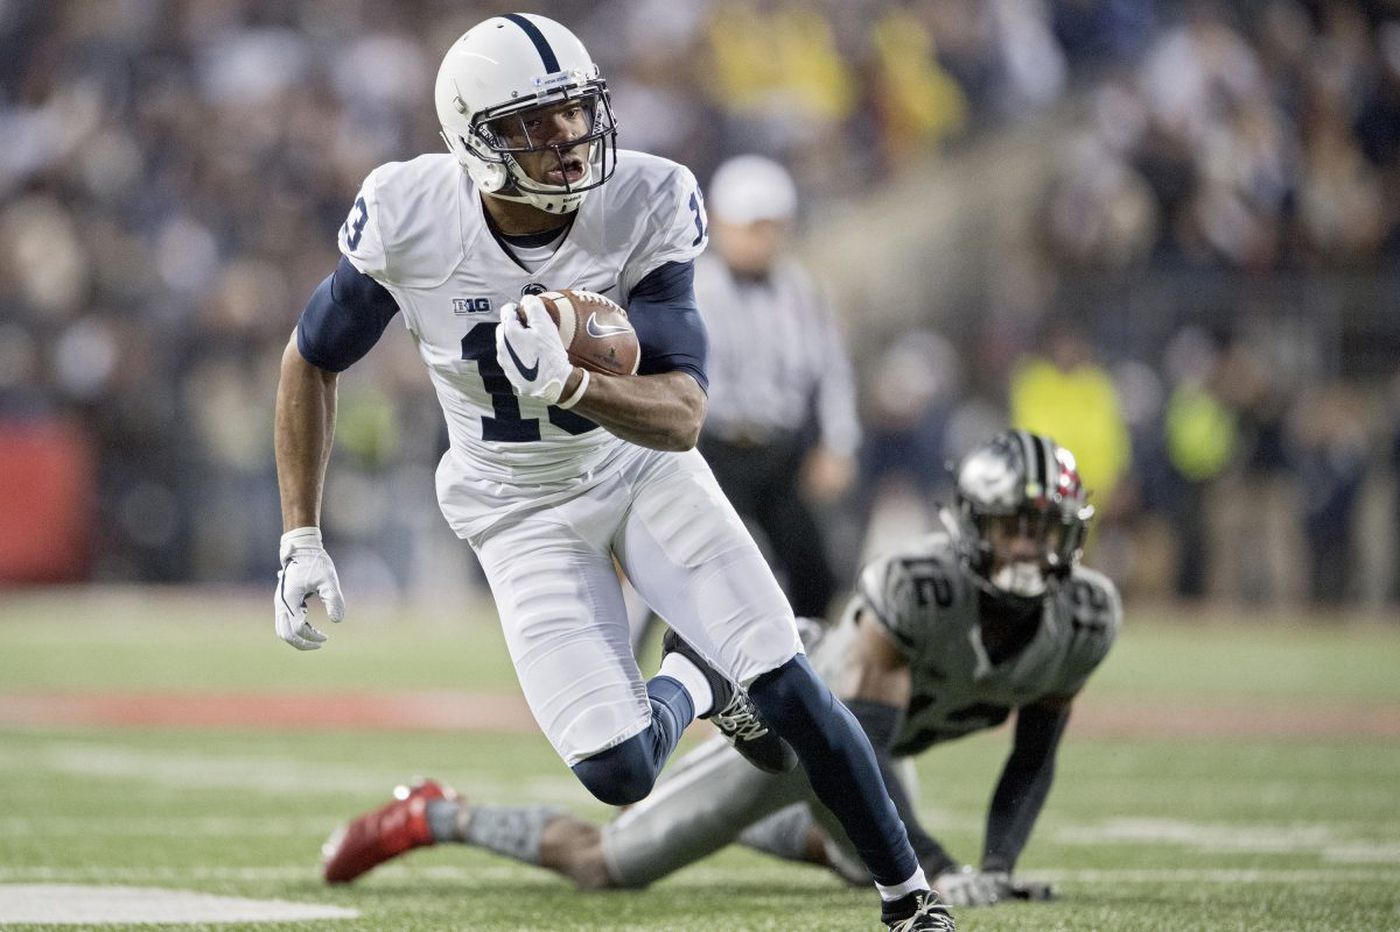 Penn State's Saeed Blacknall recalls his tough decision to withdraw commitment to Rutgers